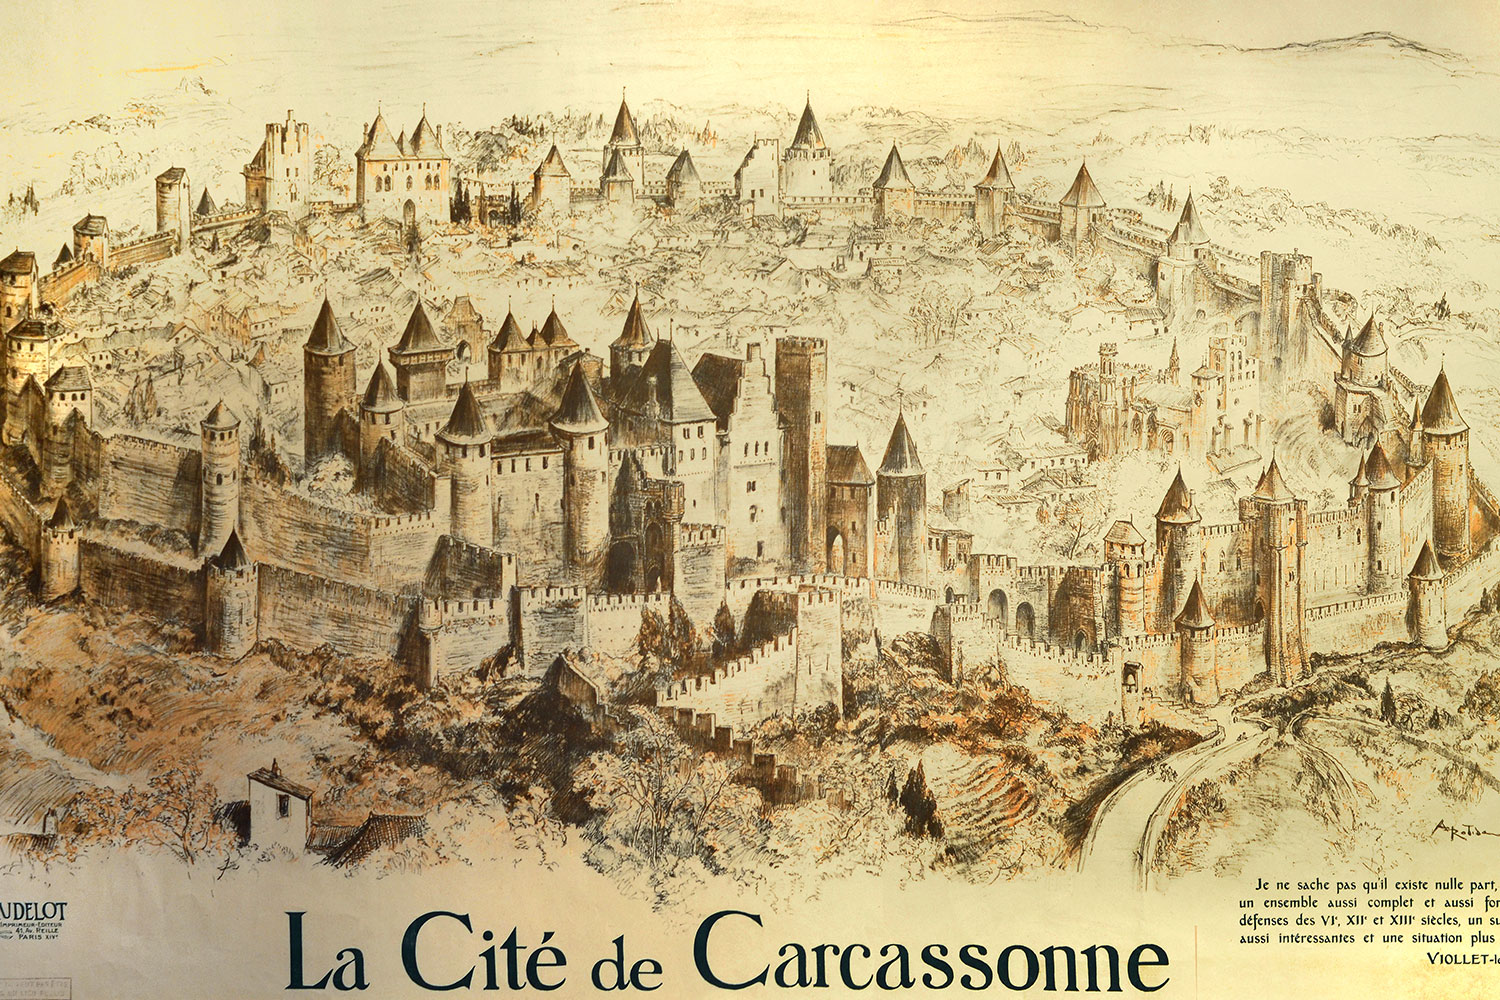 ancienne carte de Carcassonne / Old map of Carcassonne